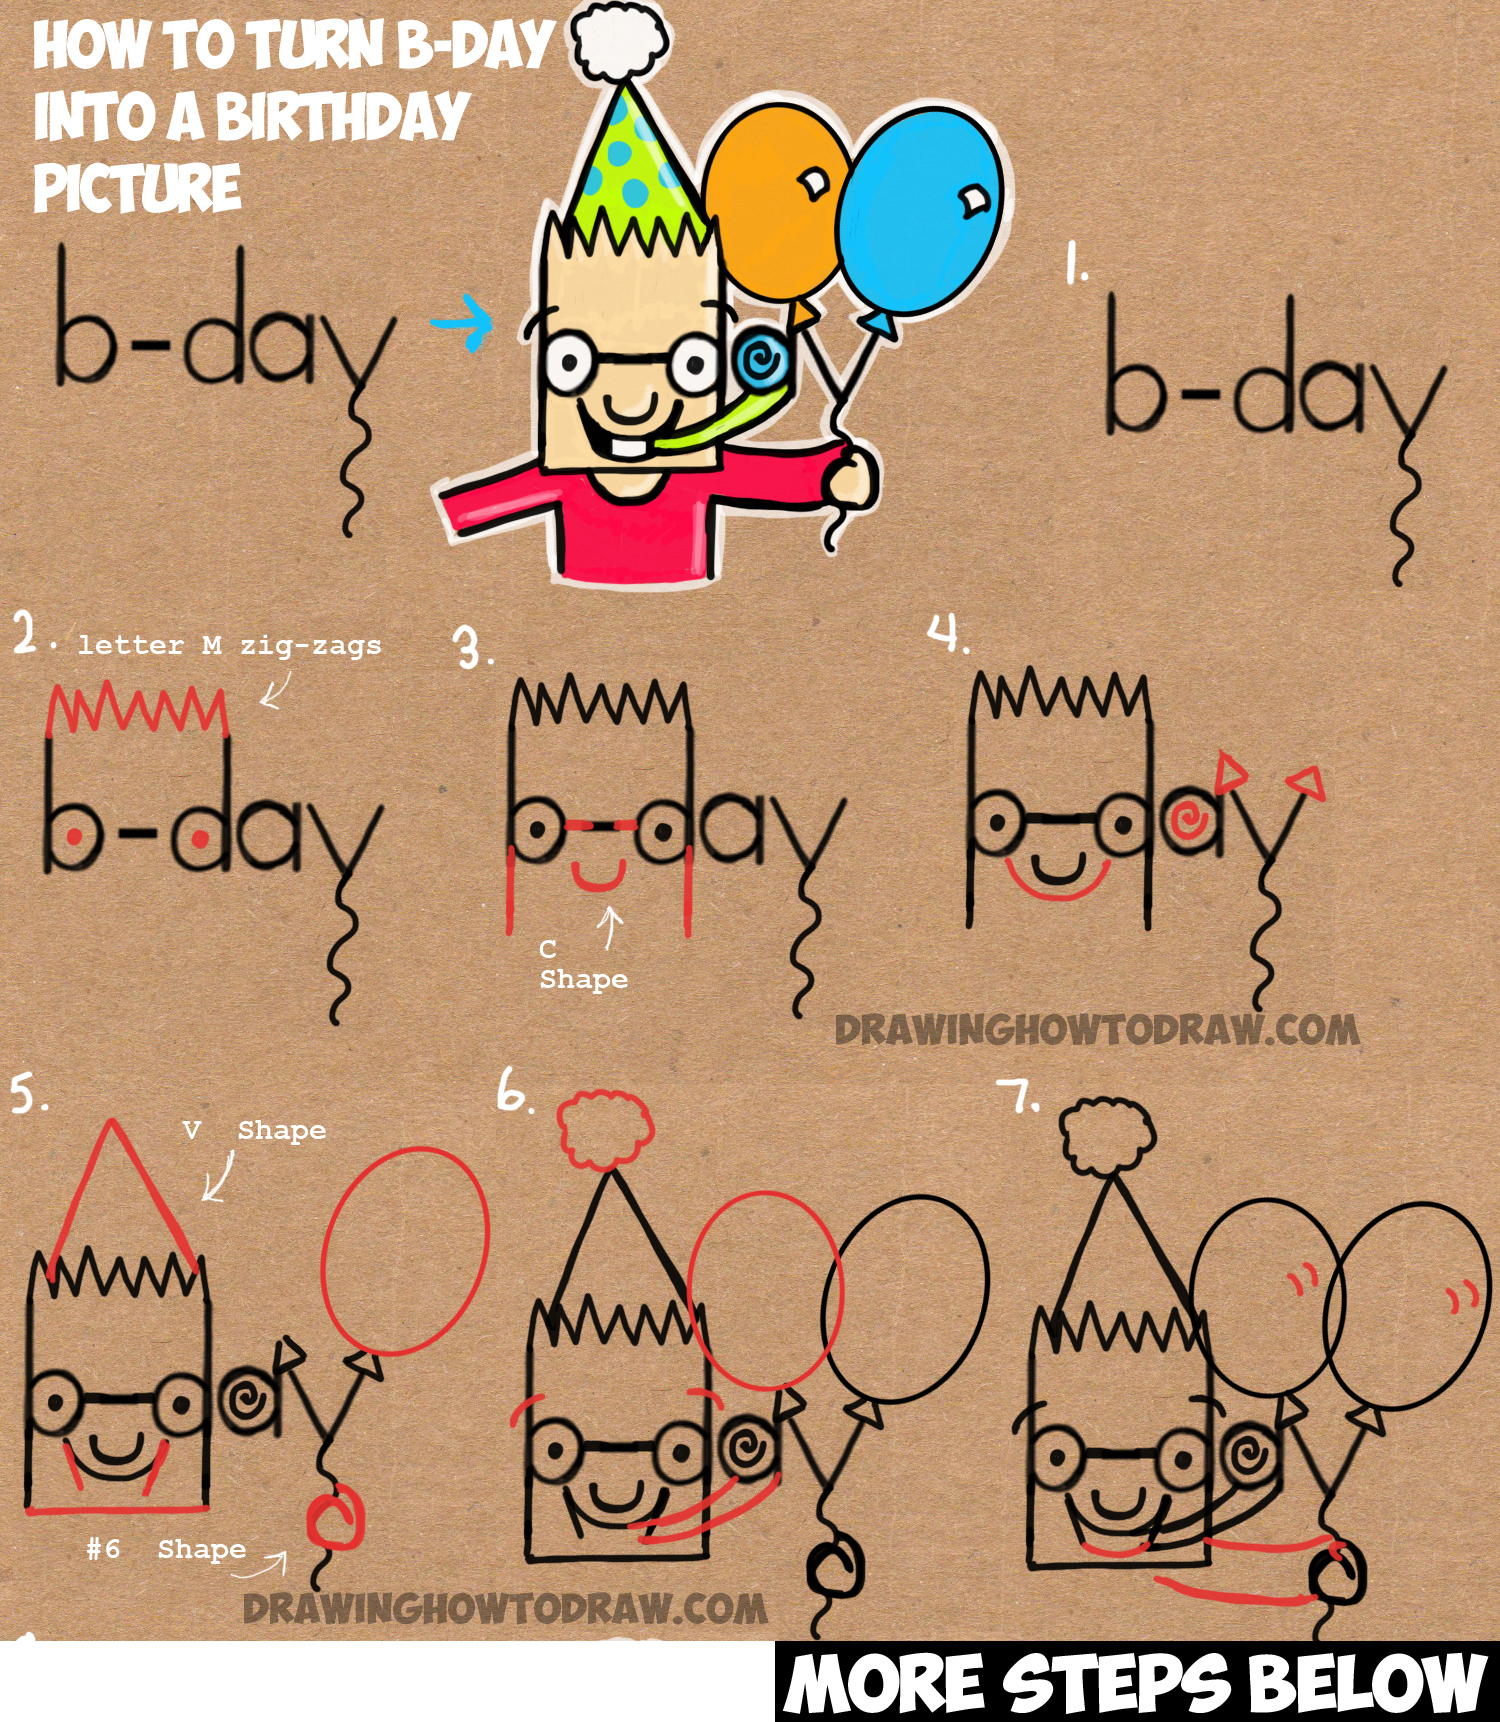 bday drawings ; howtodrawhappybirthdaypicturefromb-day-word